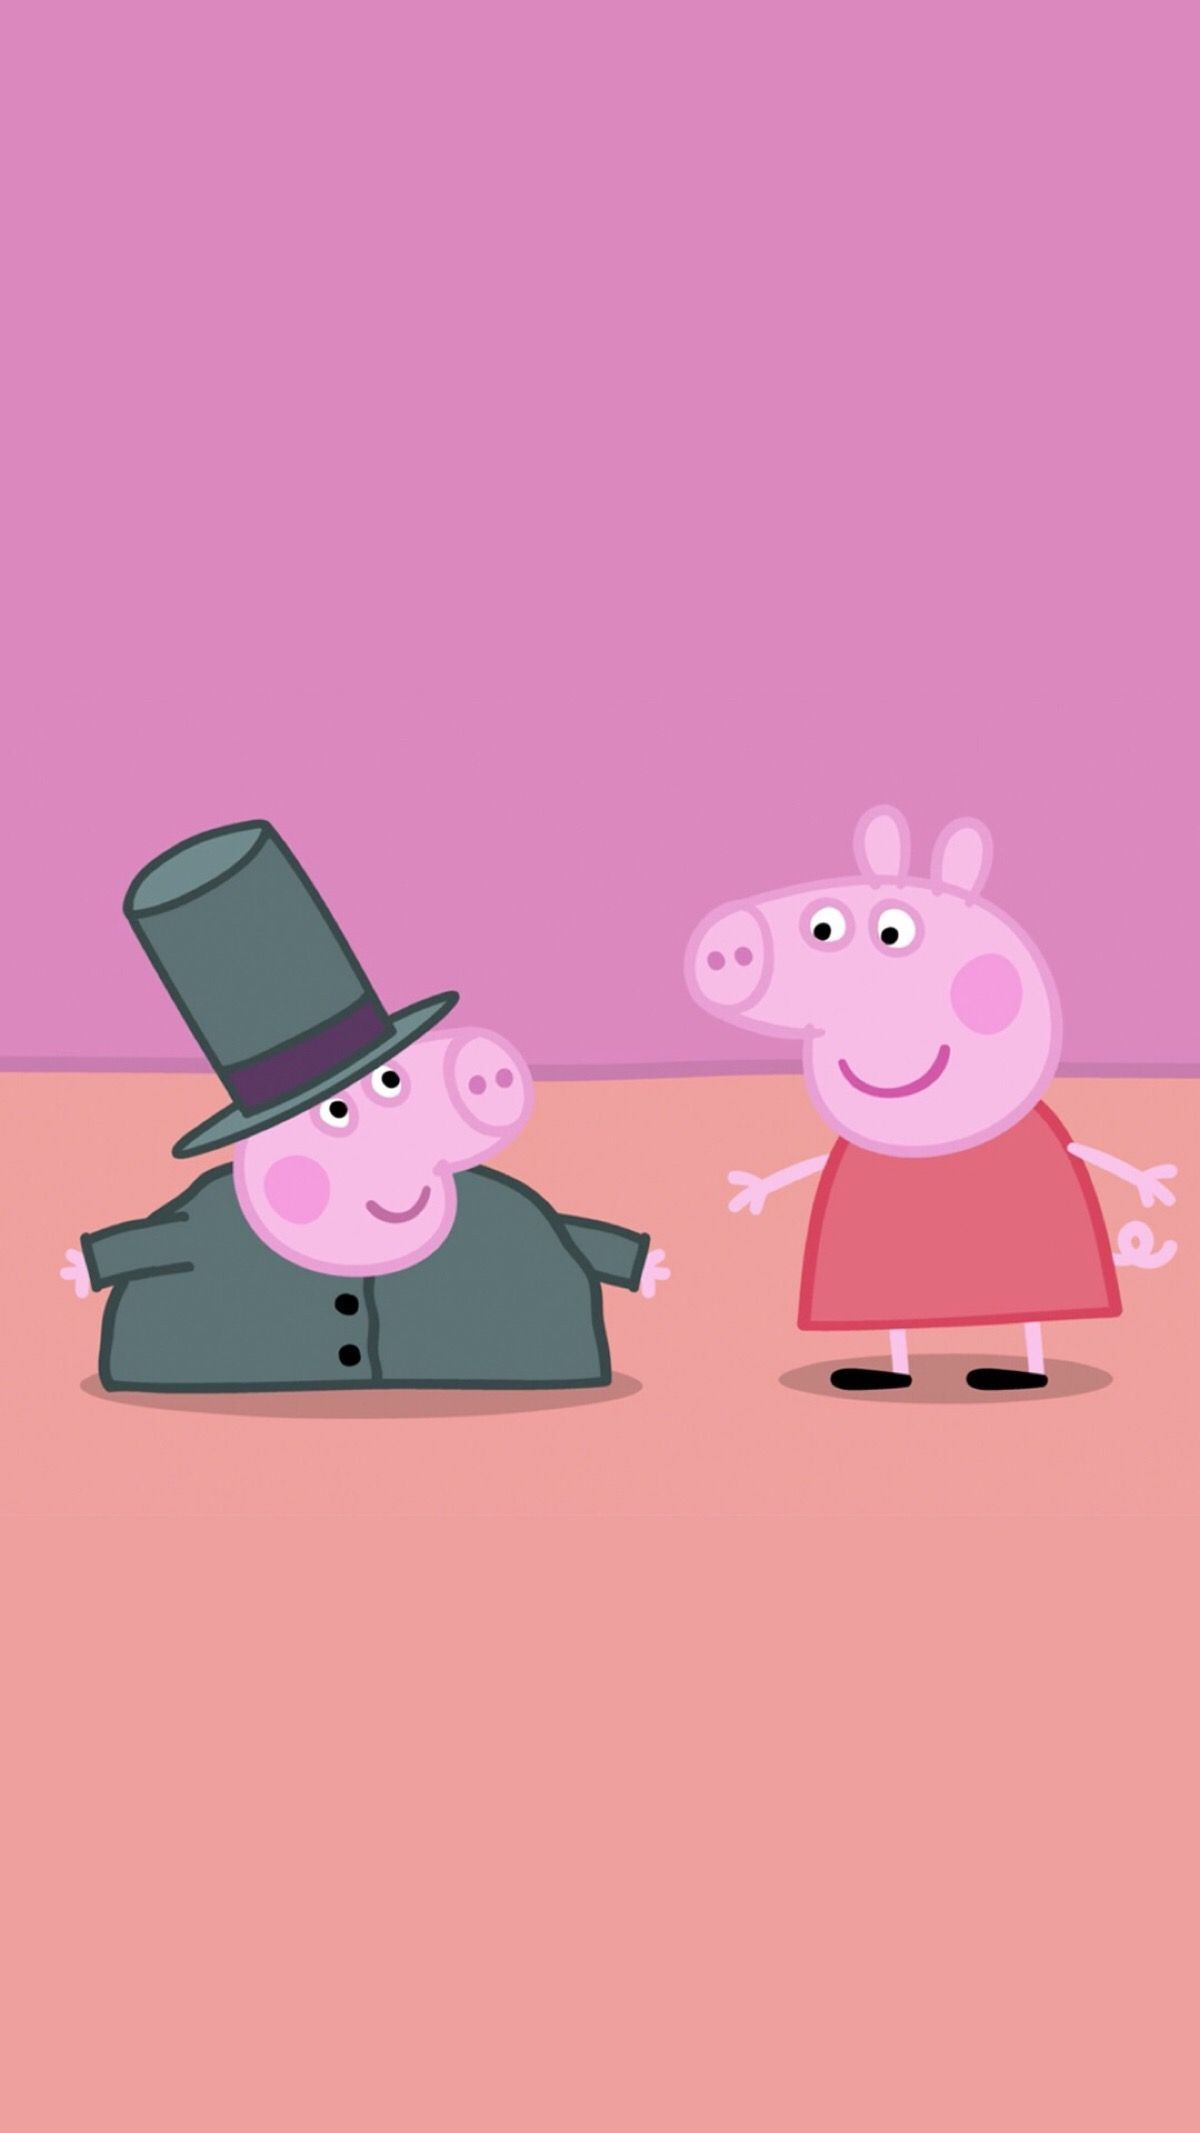 Peppa Pig Wallpaper What Are You Doing On My Phone 3d Wallpapers